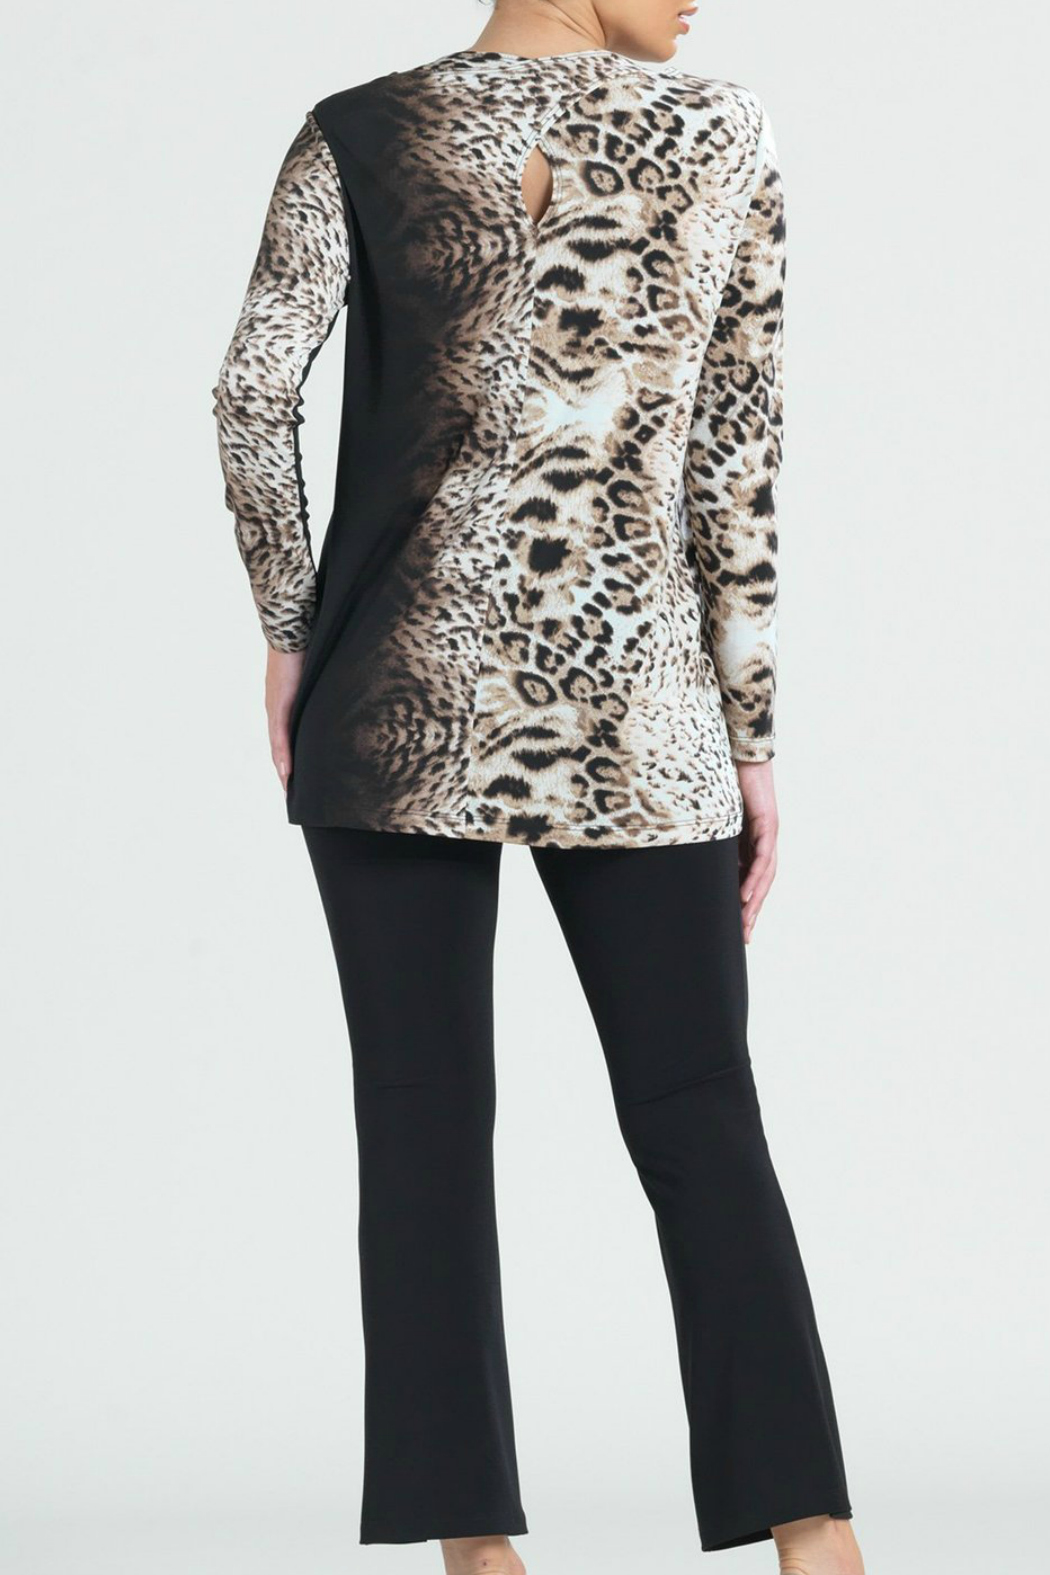 Clara Sunwoo Cheetah Ombre Cut-out Back Knit Tunic - Side Cropped Image